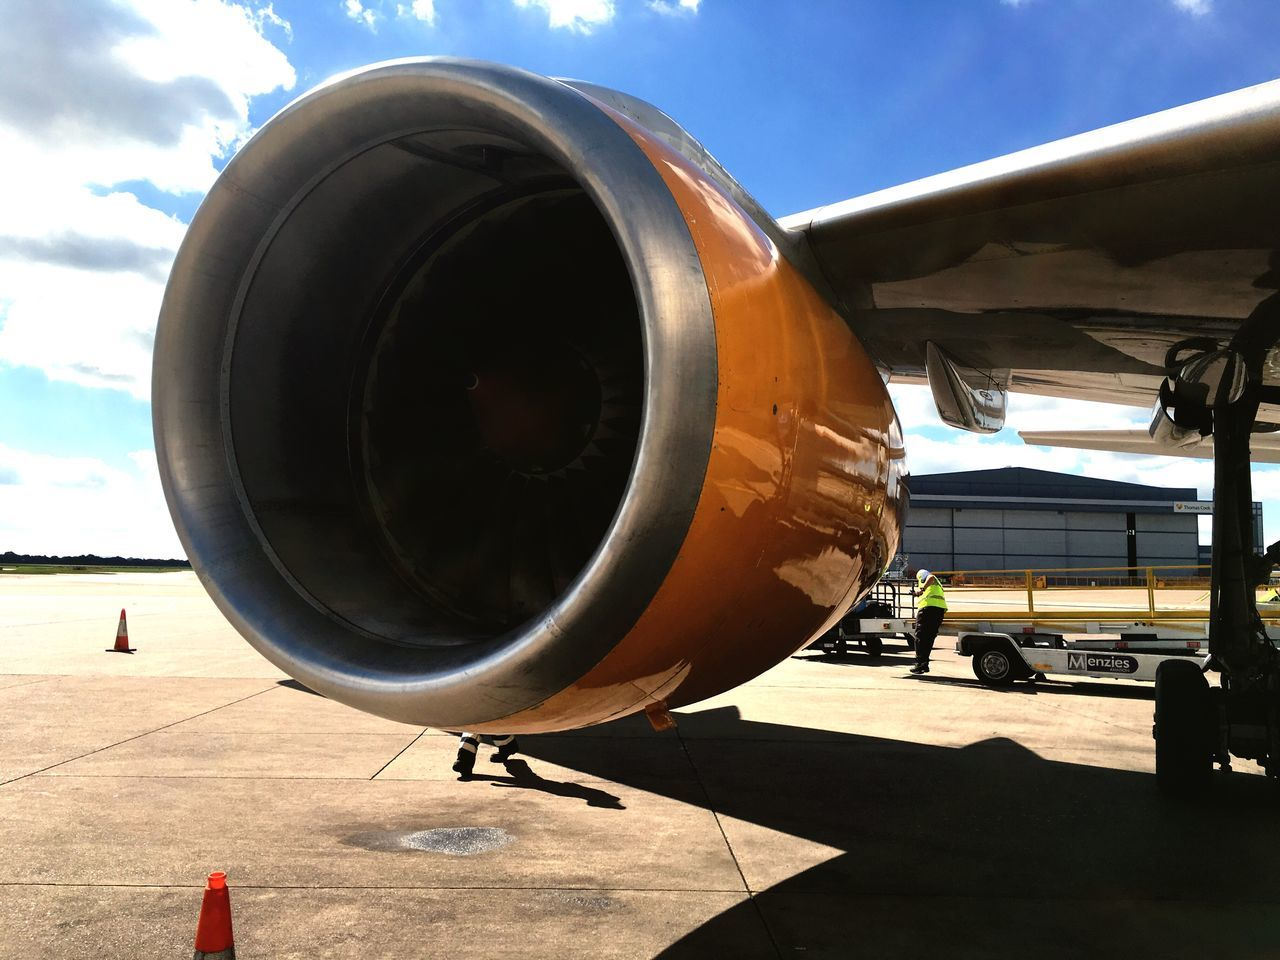 airplane, air vehicle, transportation, sky, day, sunlight, mode of transport, outdoors, jet engine, no people, close-up